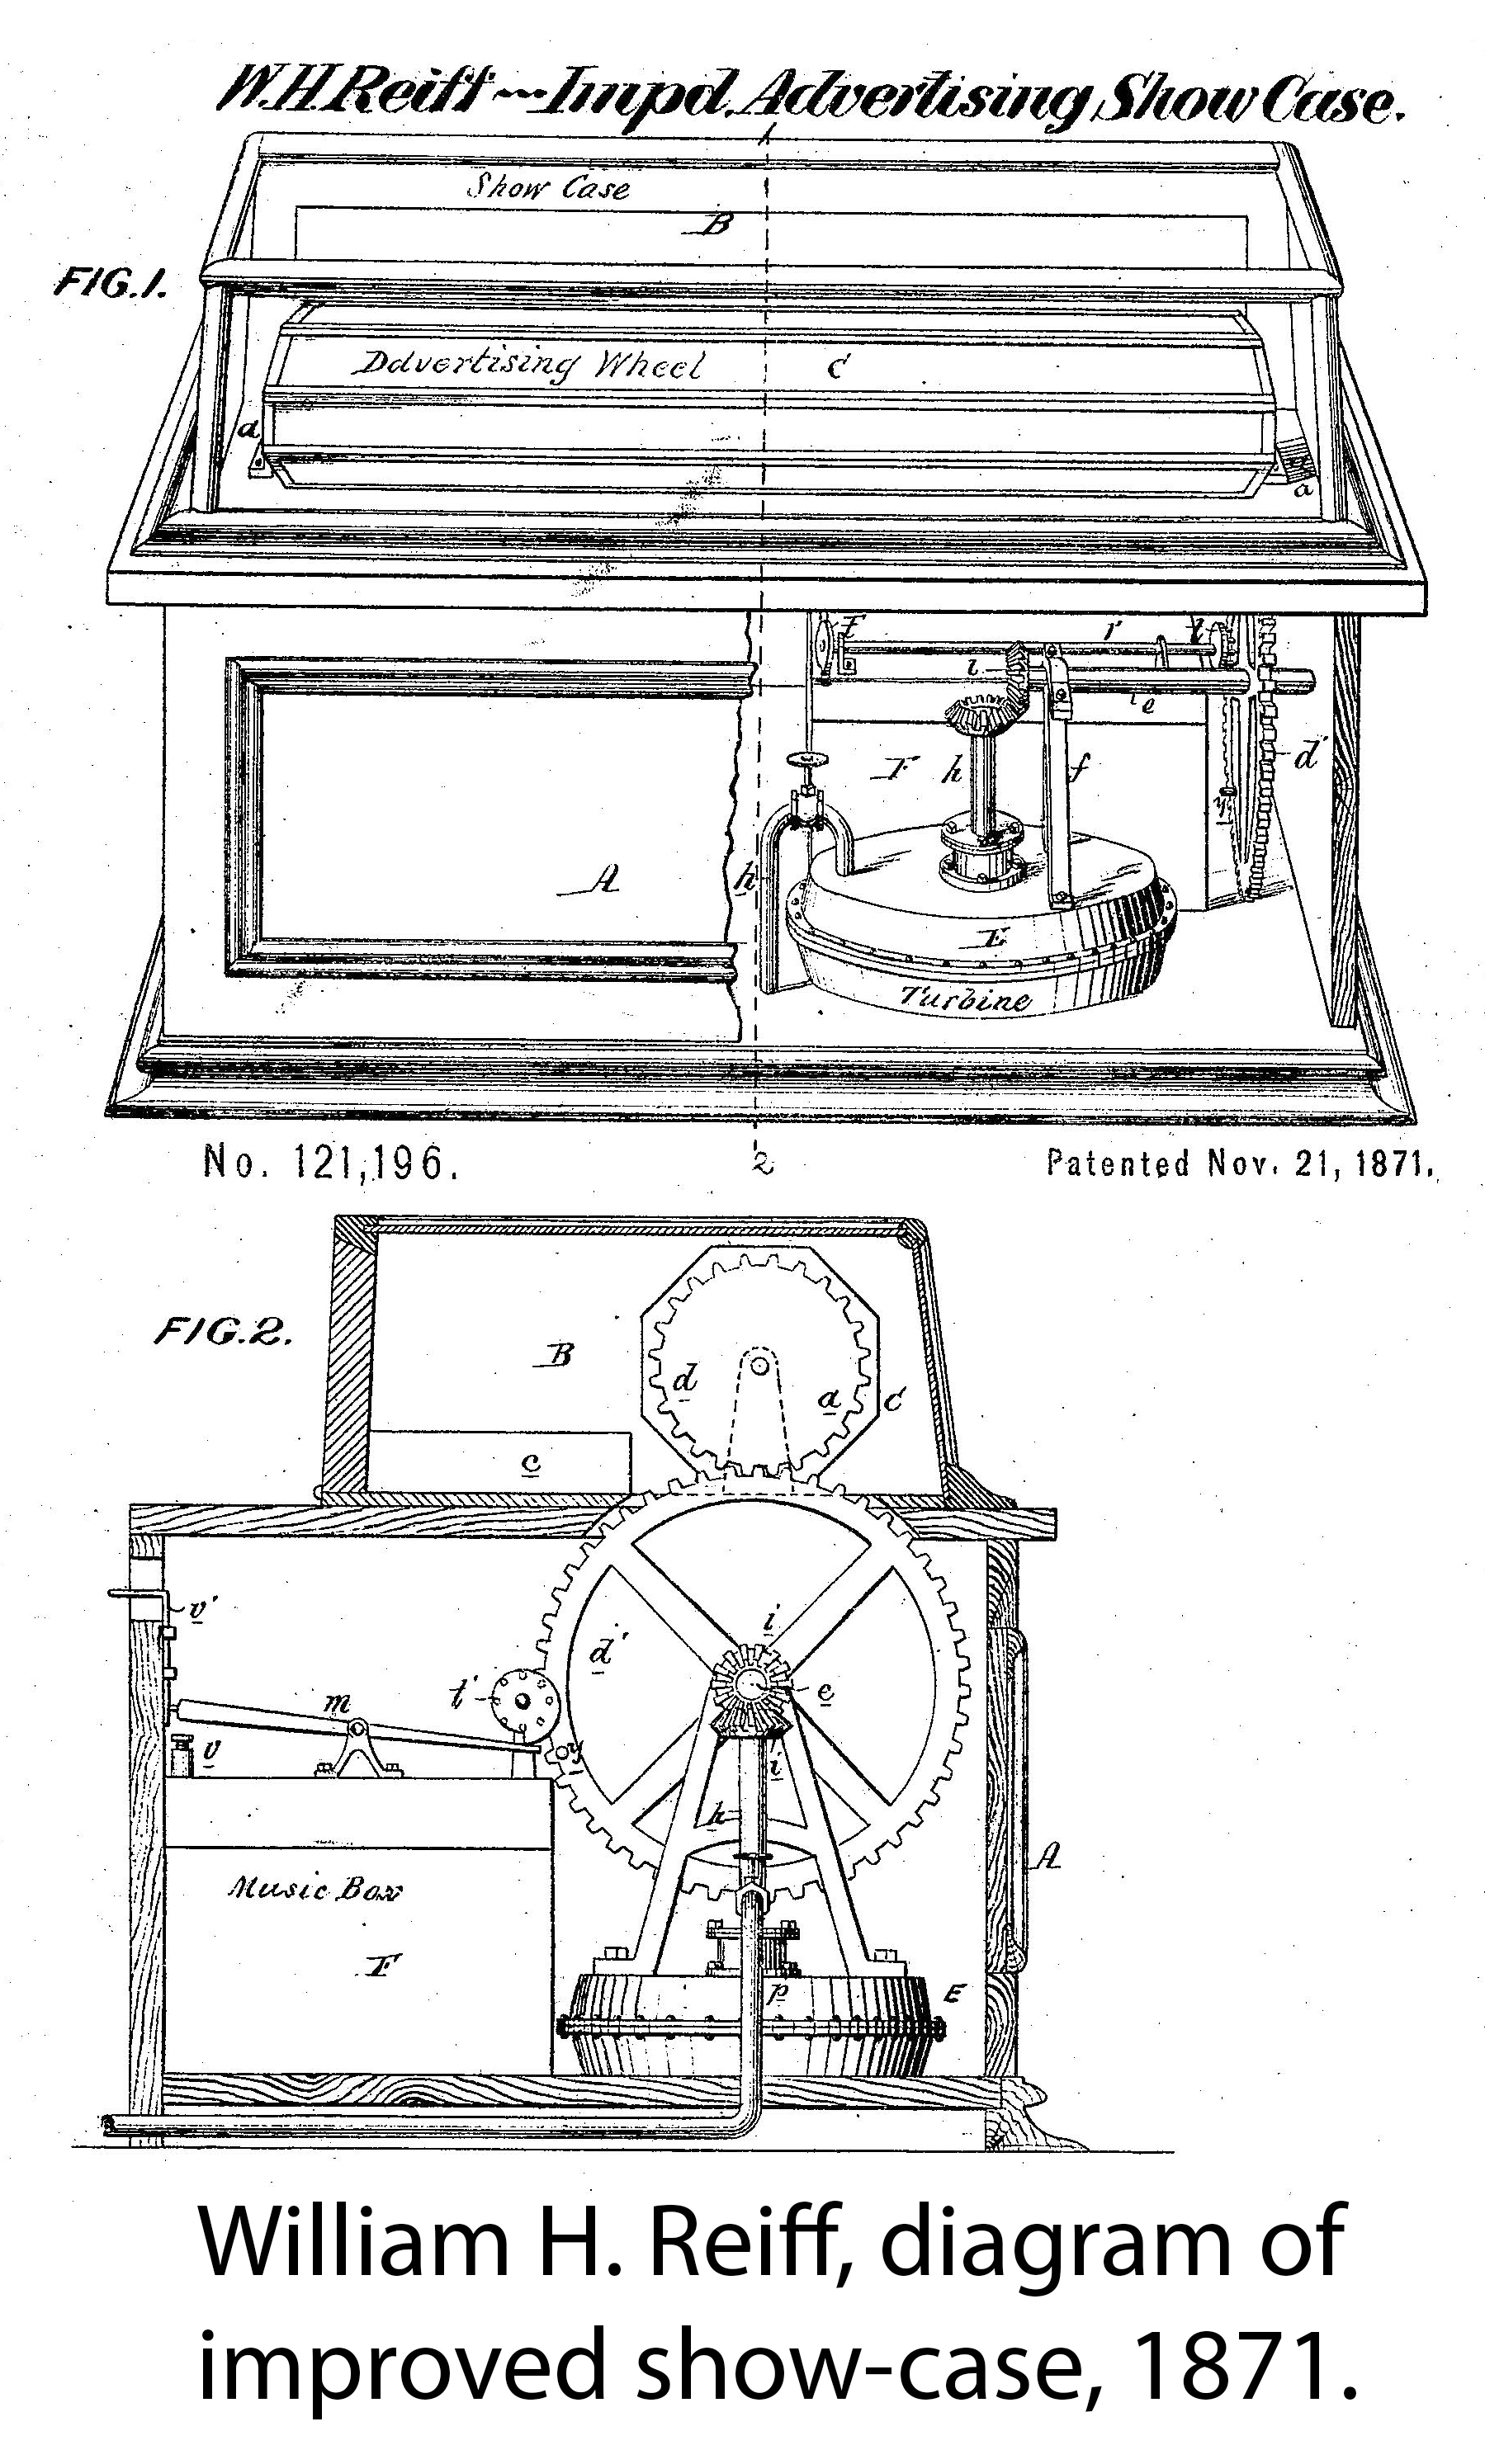 Diagram of showcase